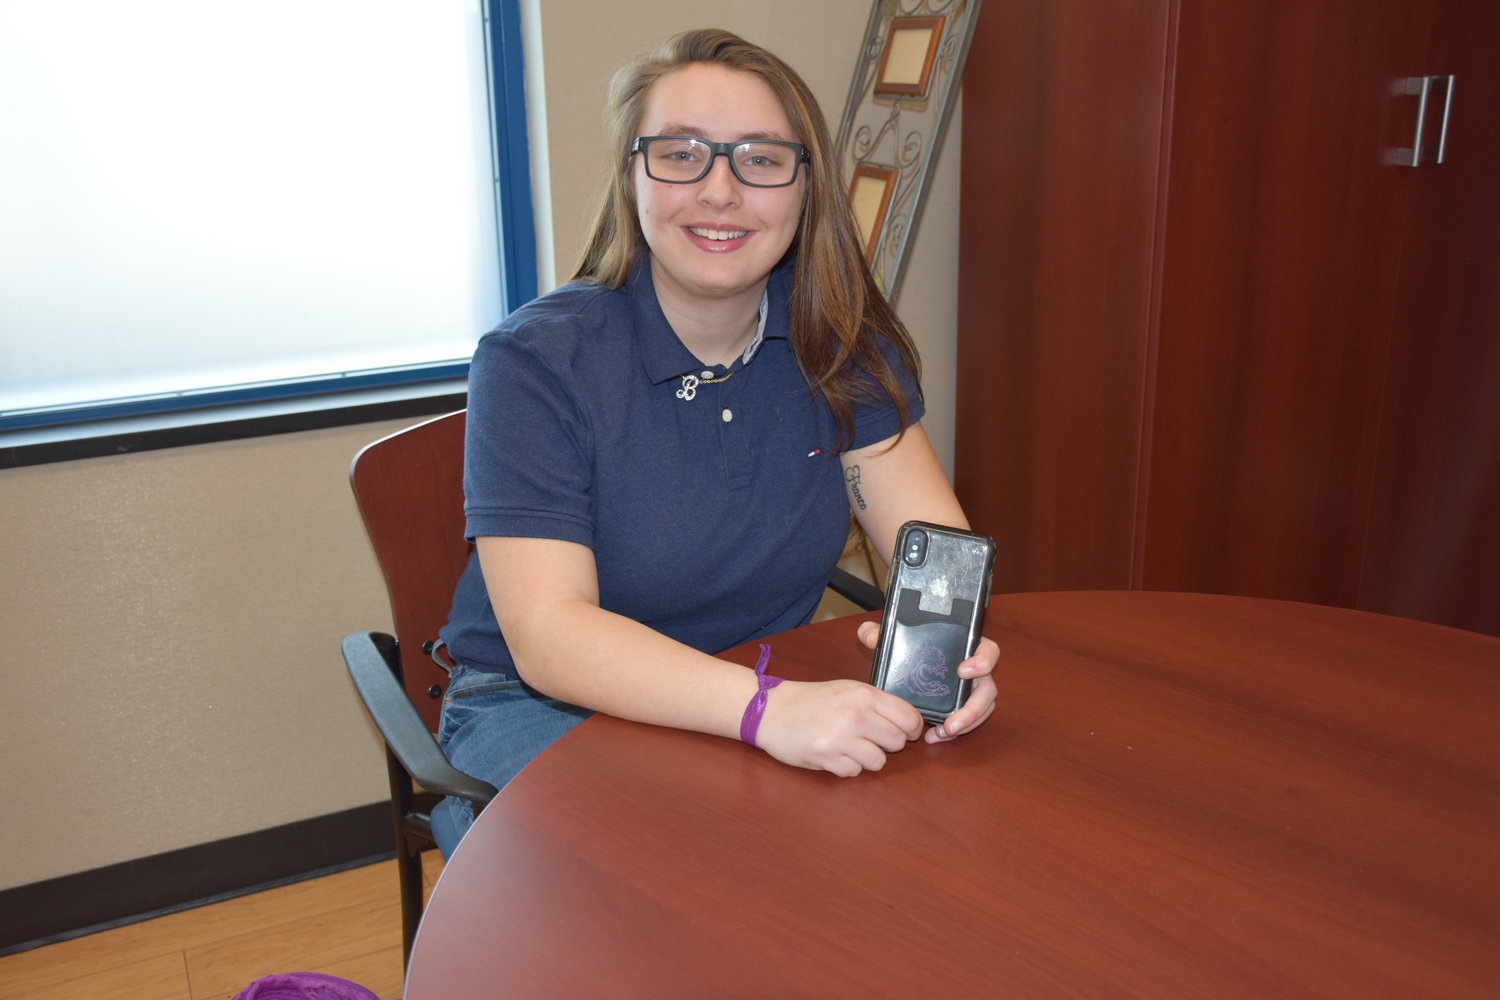 Long Beach High School junior Brooke Yellin sold bracelets and phone wallets, like those pictured, to raise money for a scholarship foundation in honor of her late mother, Geri Yellin.